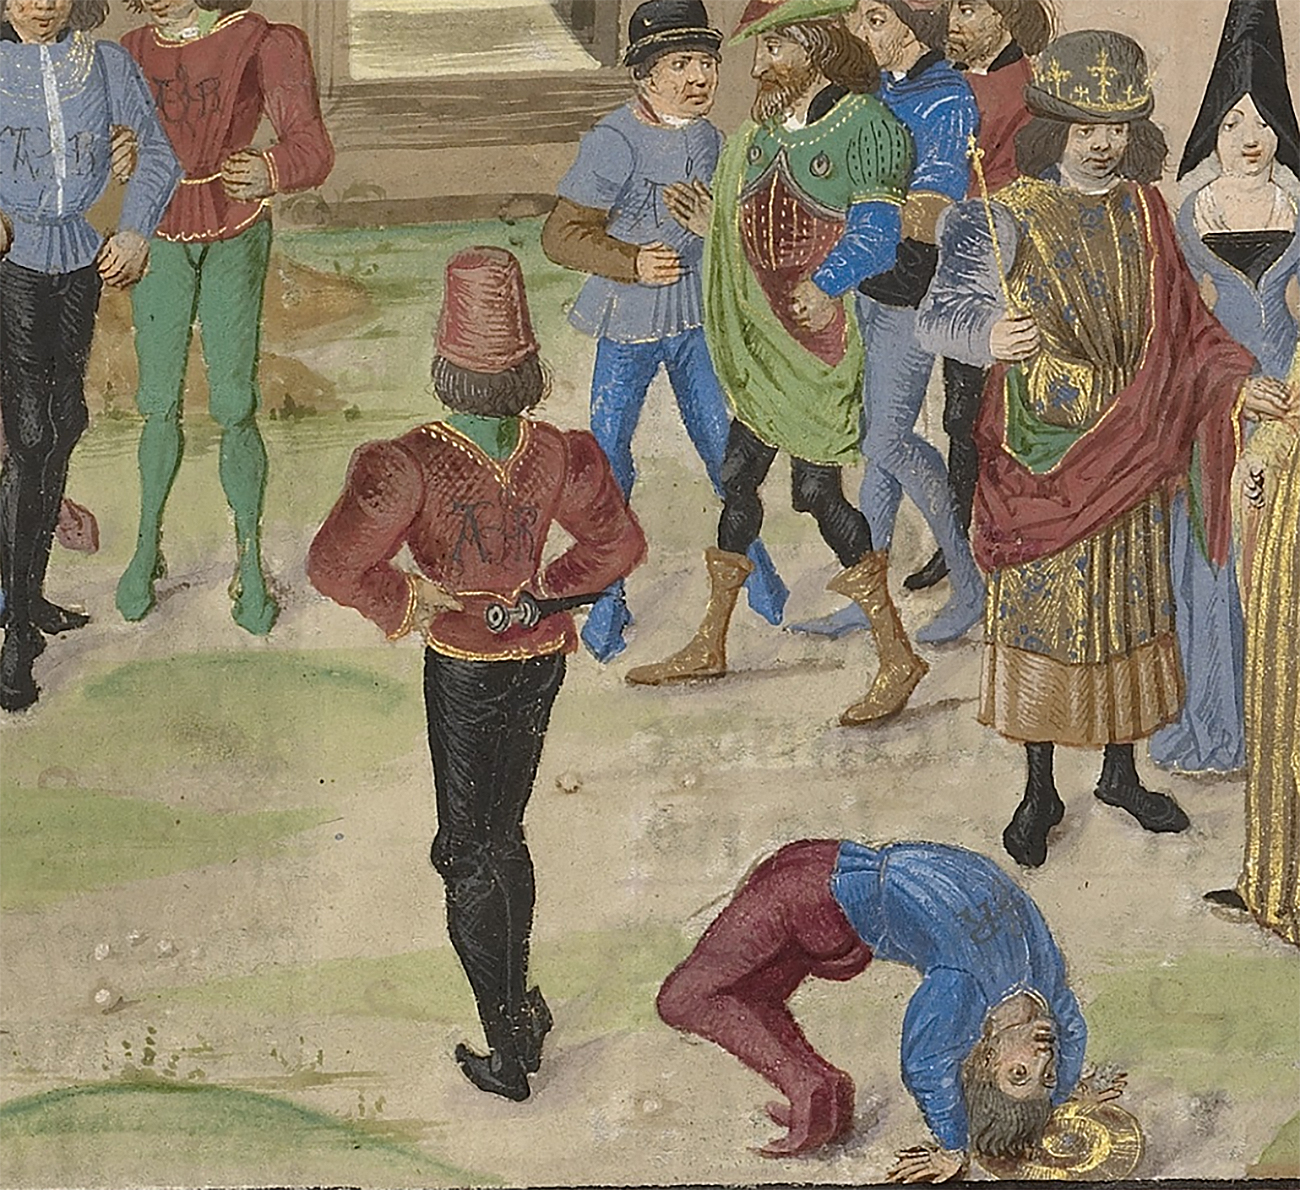 The Competition in Sittacene and the Placating of Sisigambis, about 1470–75, Master of the Jardin de Vertueuse Consolation. Tempera colors and gold on parchment, 17 x 13 in. The J. Paul Getty Museum, Ms. Ludwig XV 8, fol. 99. Digital image courtesy of the Getty's Open Content Program